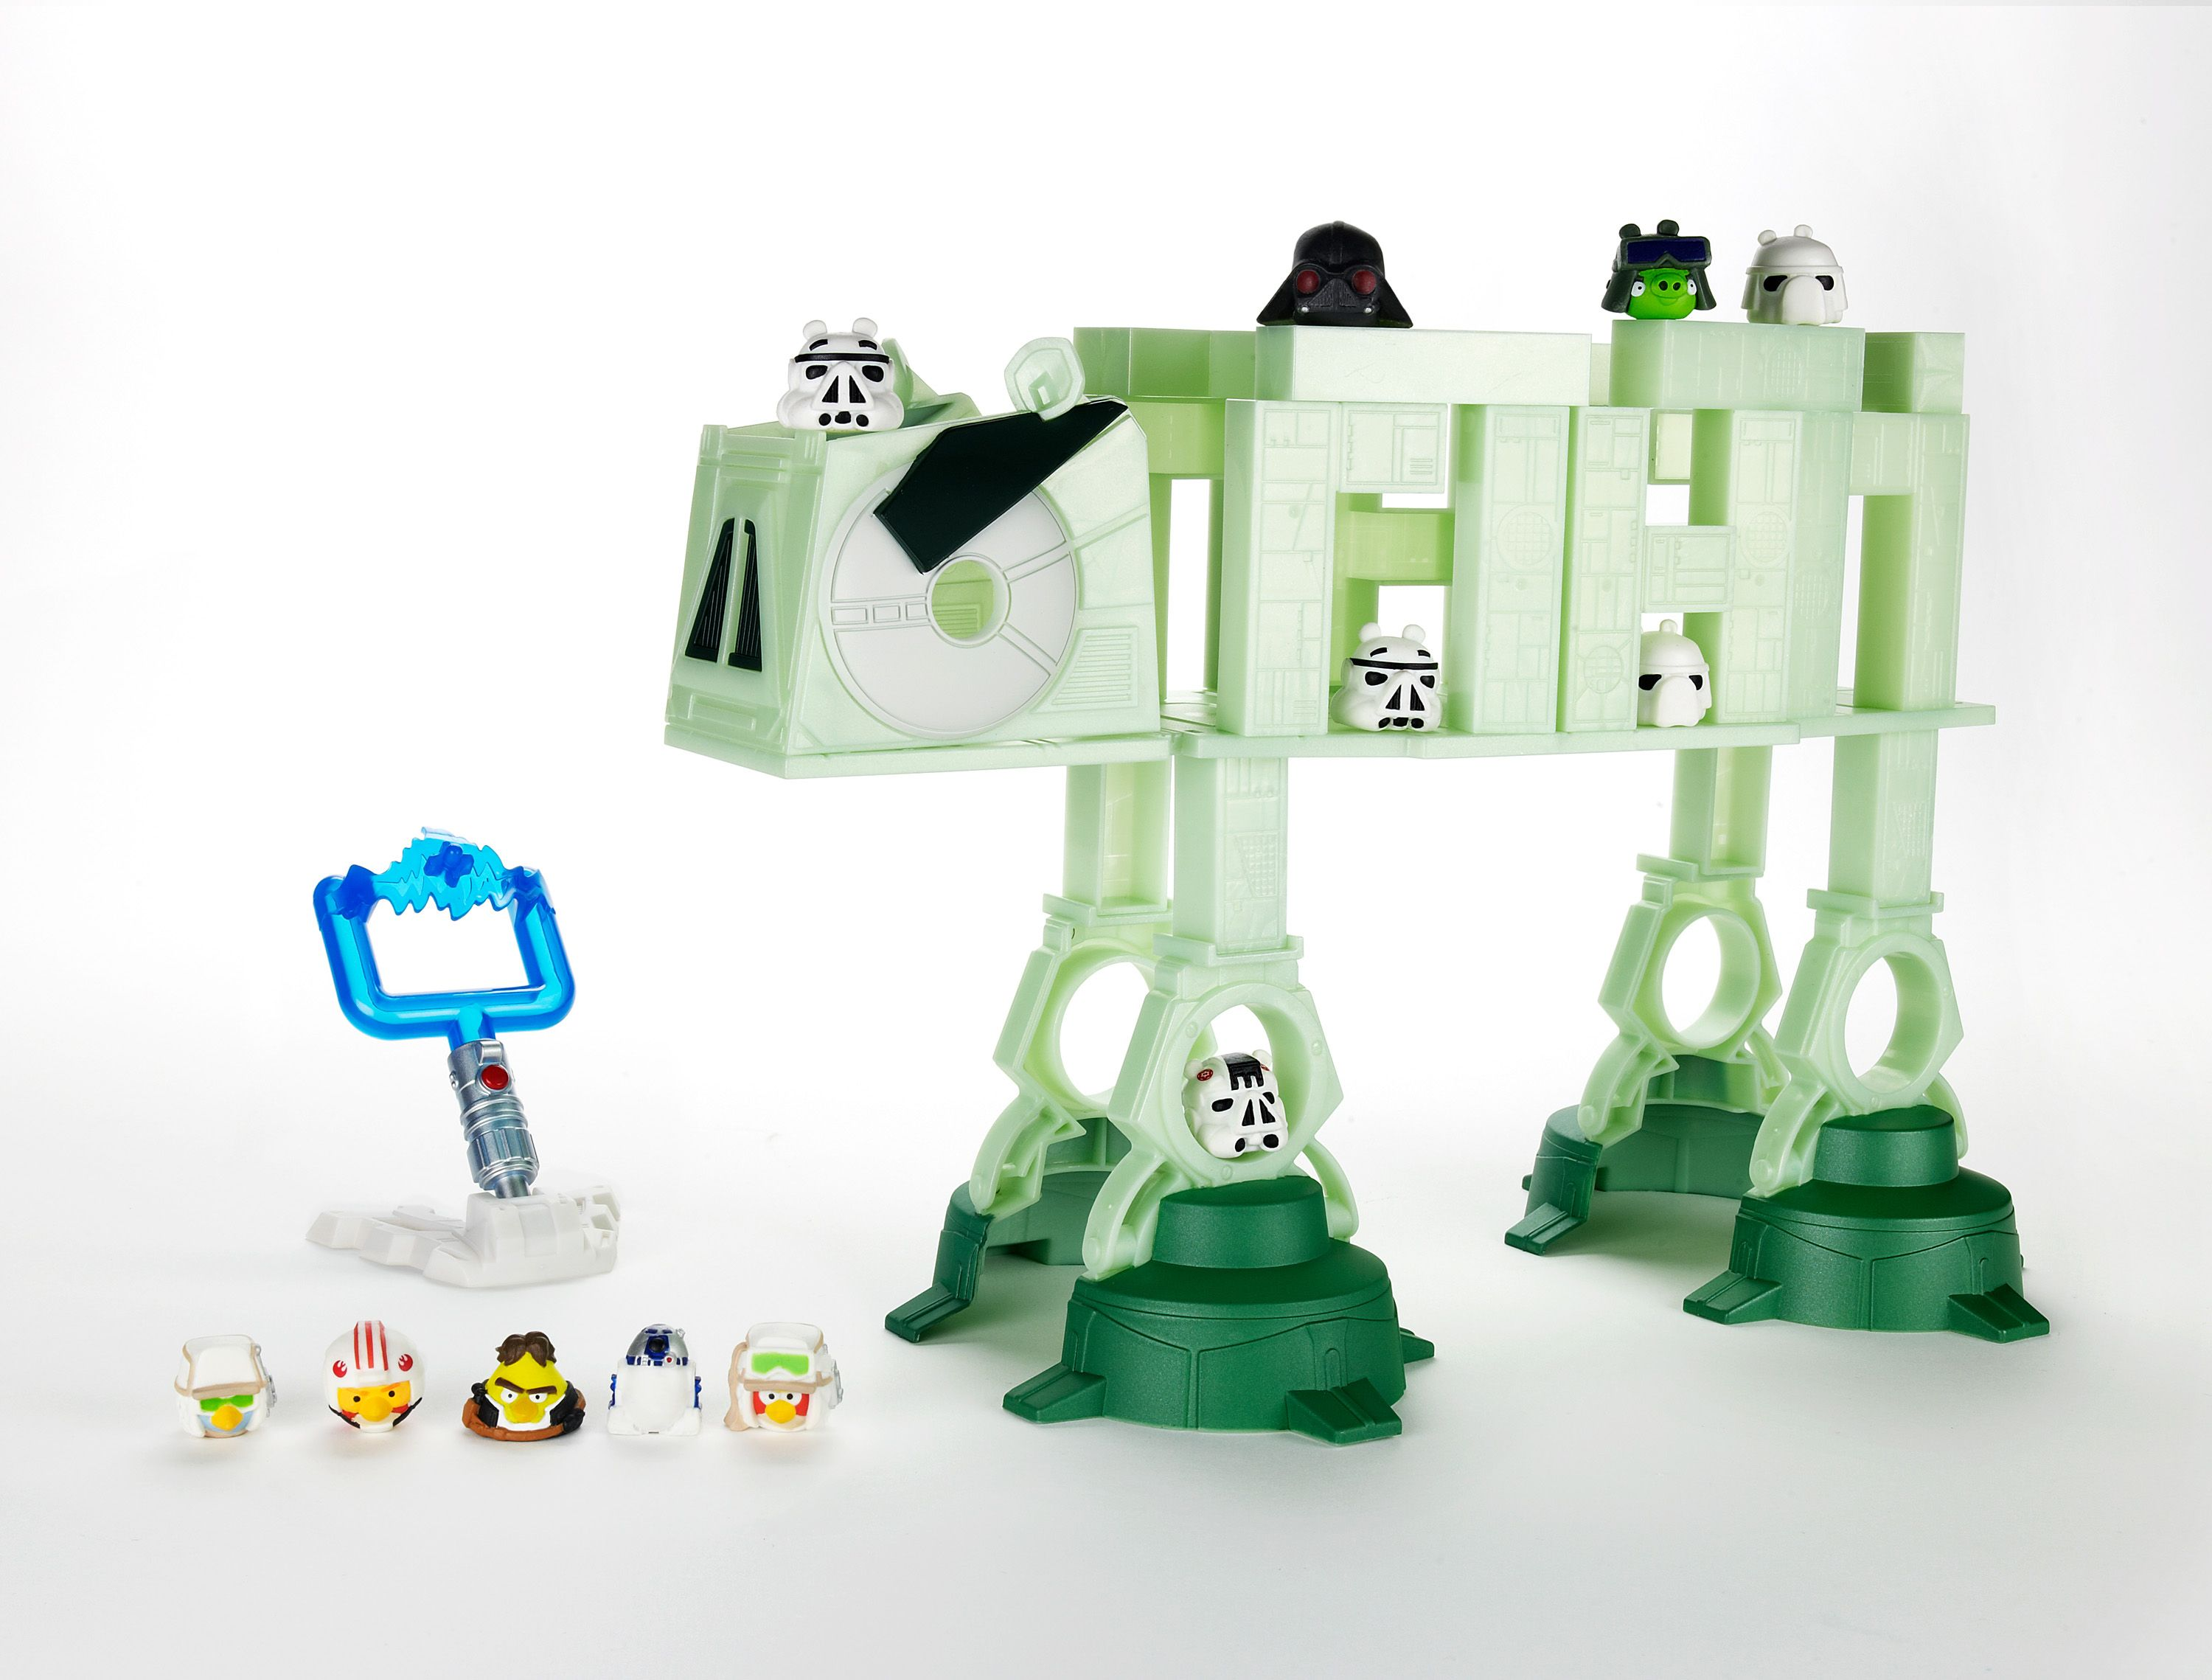 First Look At The Angry Birds Star Wars Crossover Behold The Pig